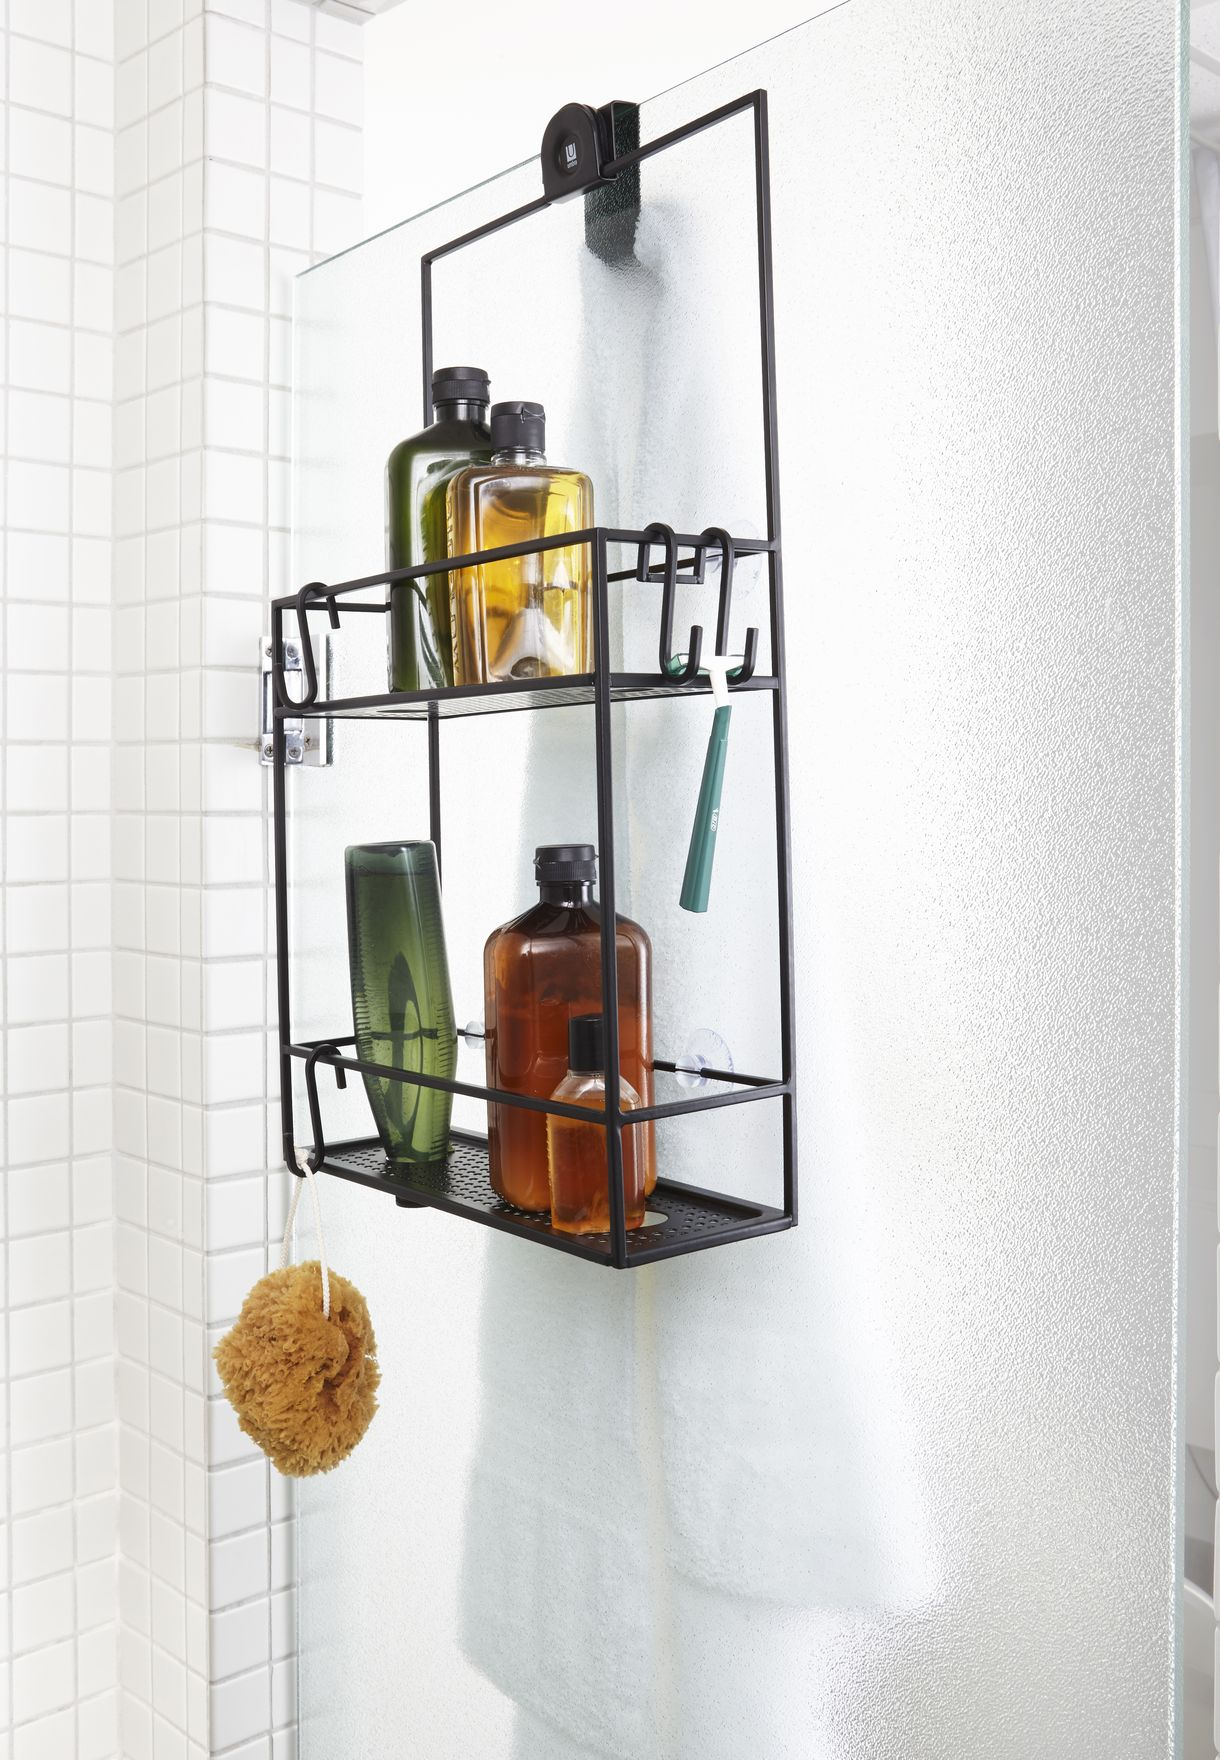 Cubiko Shower Storage